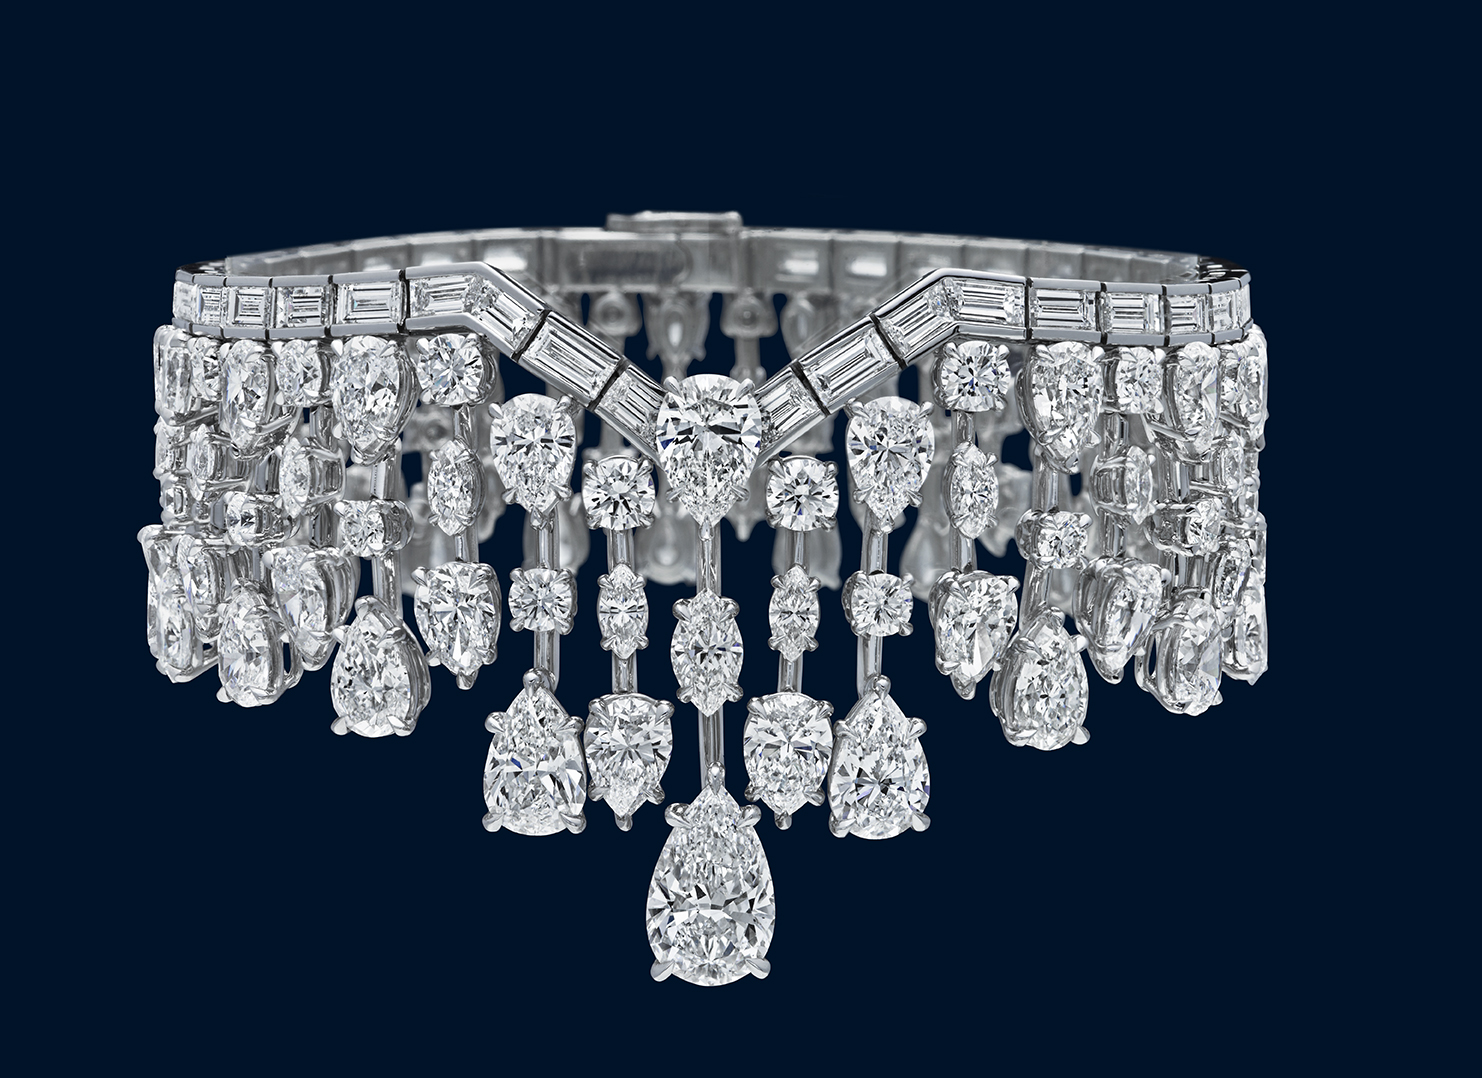 HIGH JEWELRY DIAMOND NECKLACE MADE BY HARRY WINSTON AND SHOT BY DAVID FILIBERTI